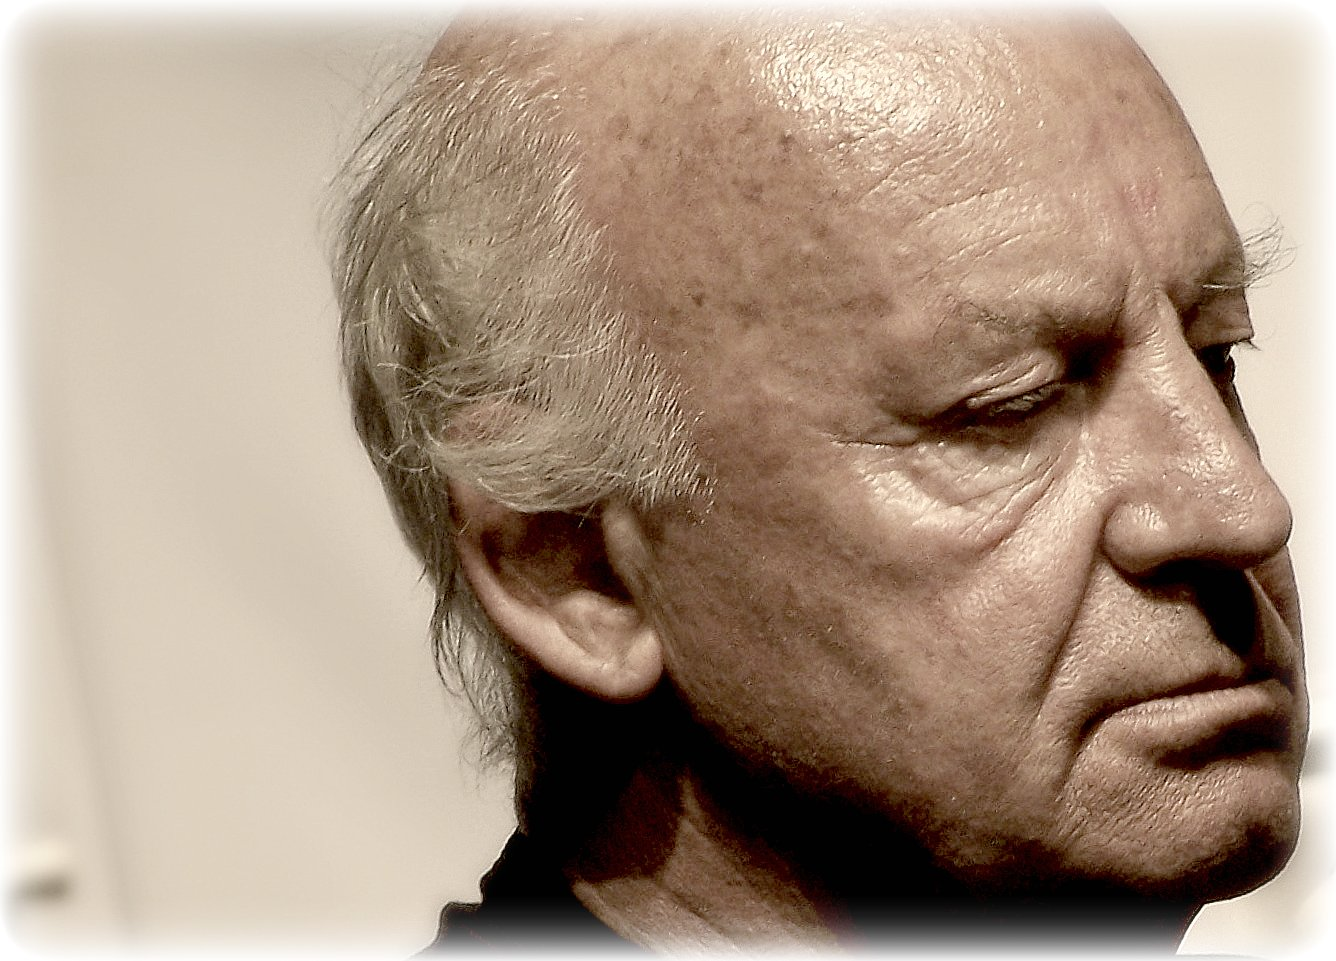 an analysis of open veins of latin america by eduardo galeano The open veins of latin america:  74-year-old eduardo galeano  and it is also an inspiration to reread open veins and latin america with much-needed fresh eyes.